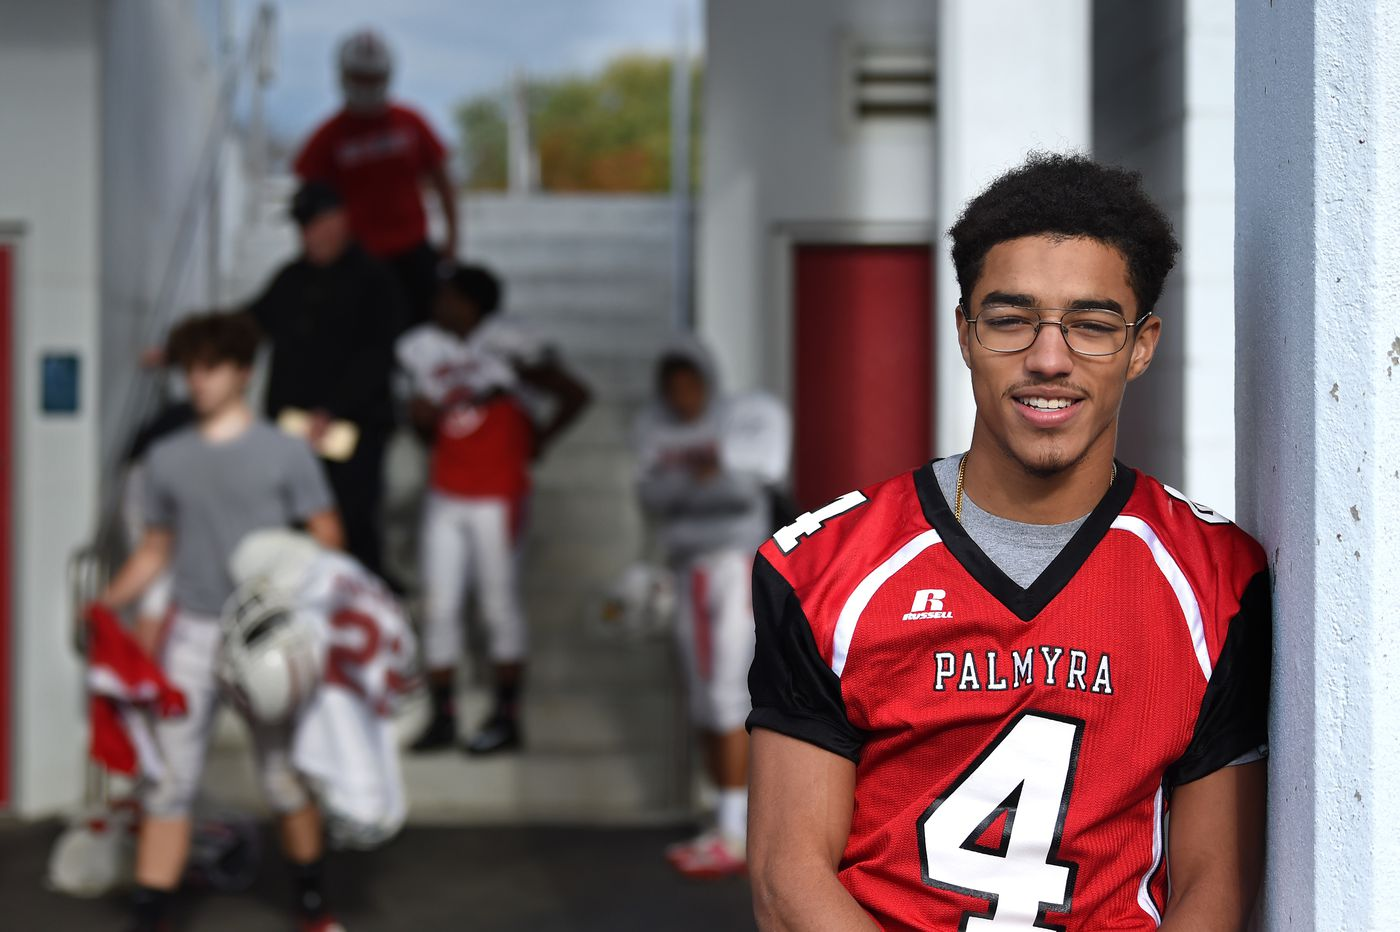 Palmyra's Sam Aviles sets South Jersey record for rushing yards by a quarterback